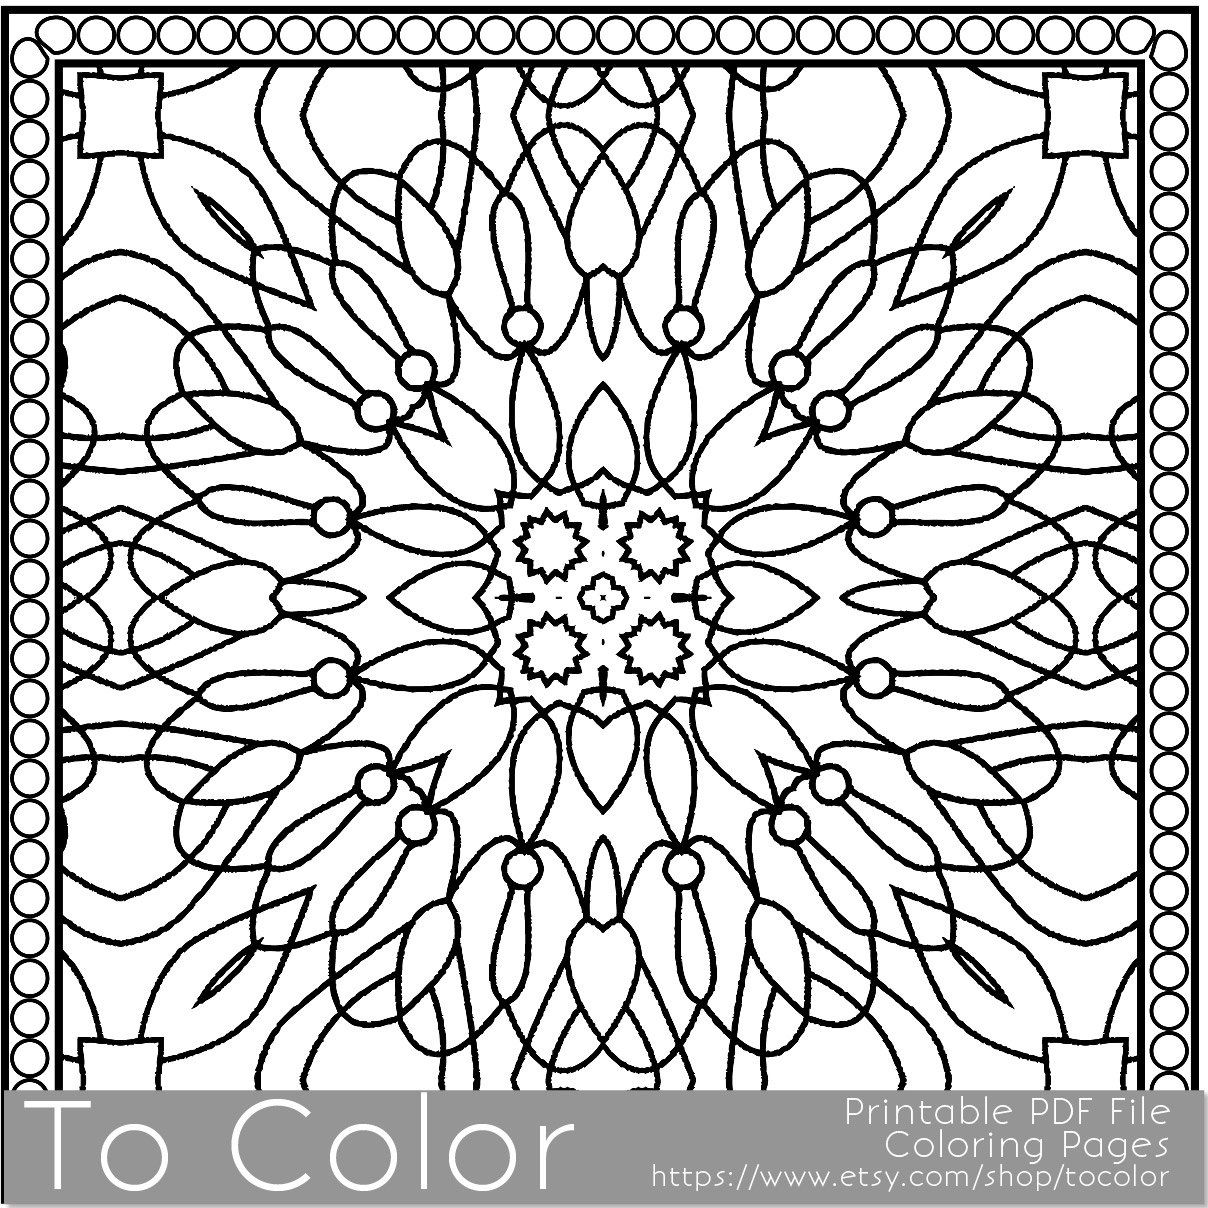 printable coloring pages for adults square coloring pattern pdf jpg instant download - Printable Coloring Pages Patterns